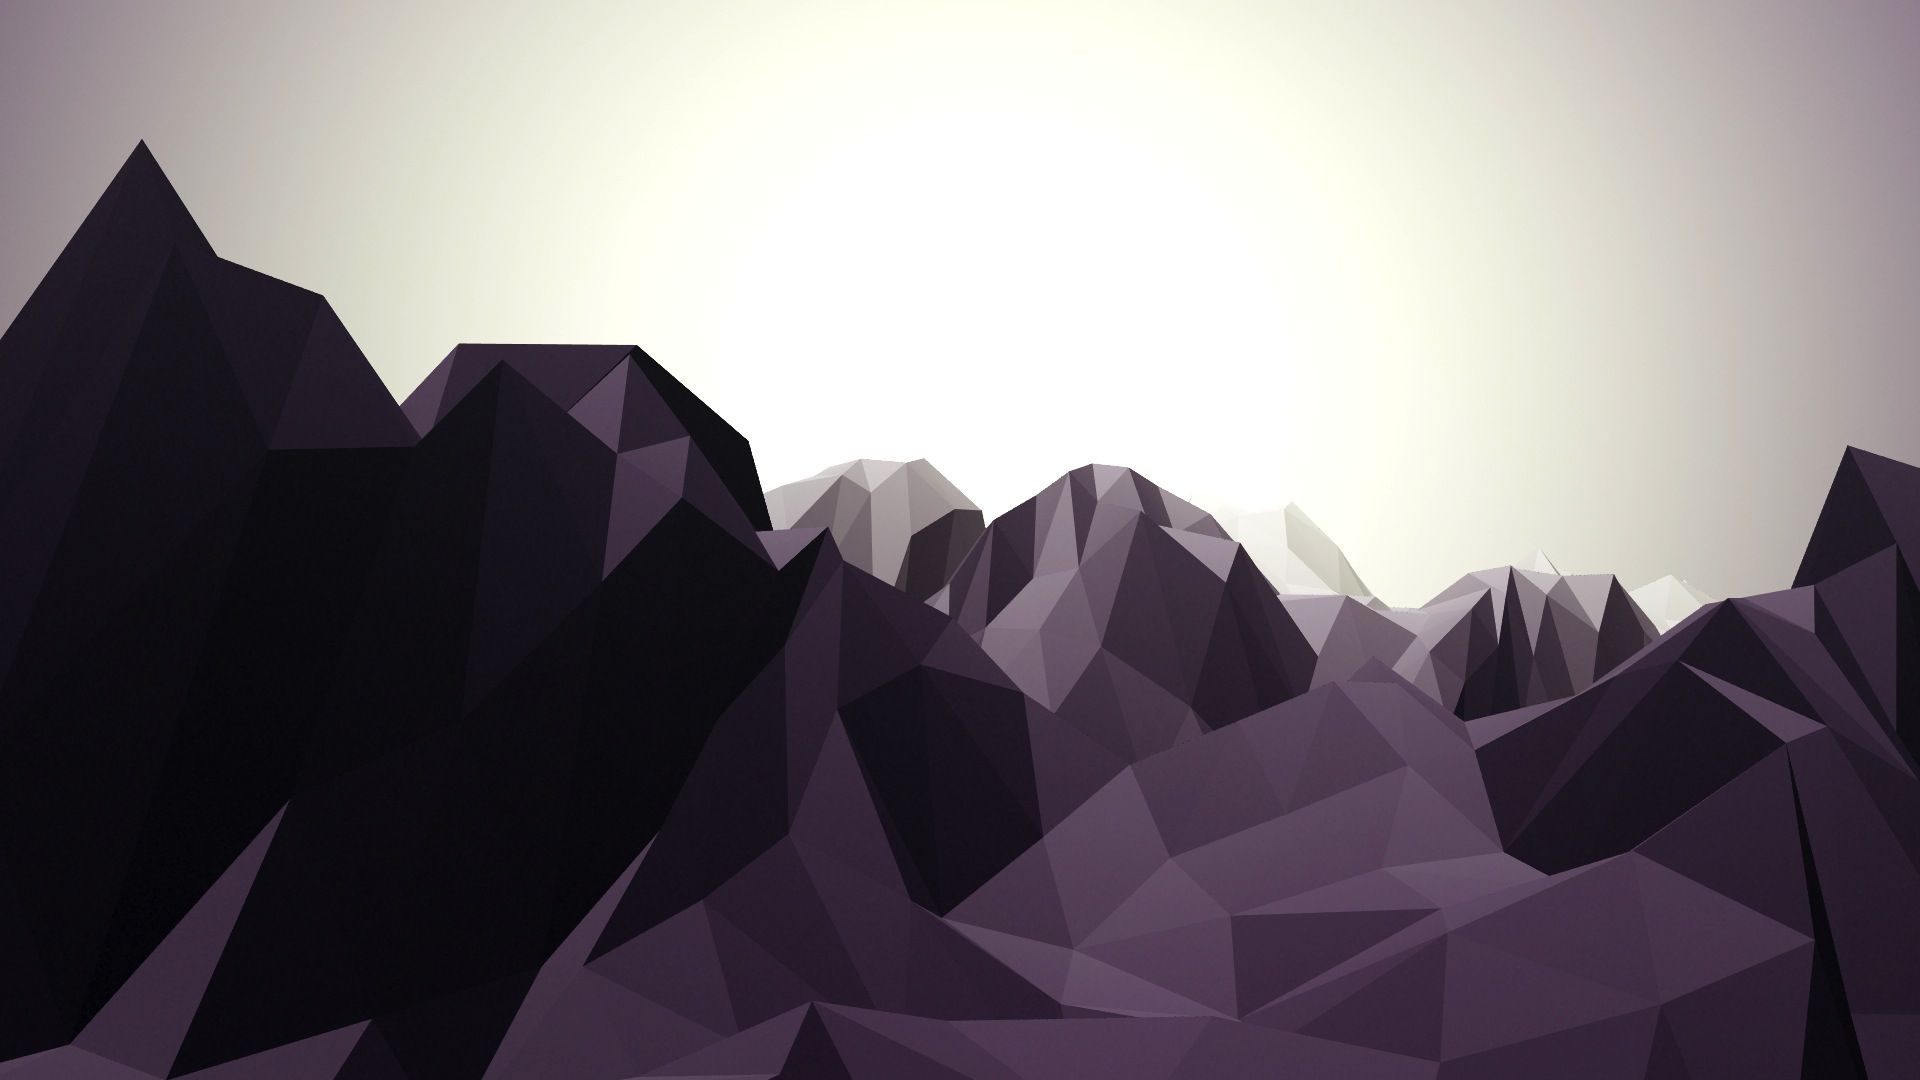 Low Poly Mountain Trapcode Mir - mir绘制的低聚合山景观AE Low Poly Mountain Landscapes With Trapcode Mir